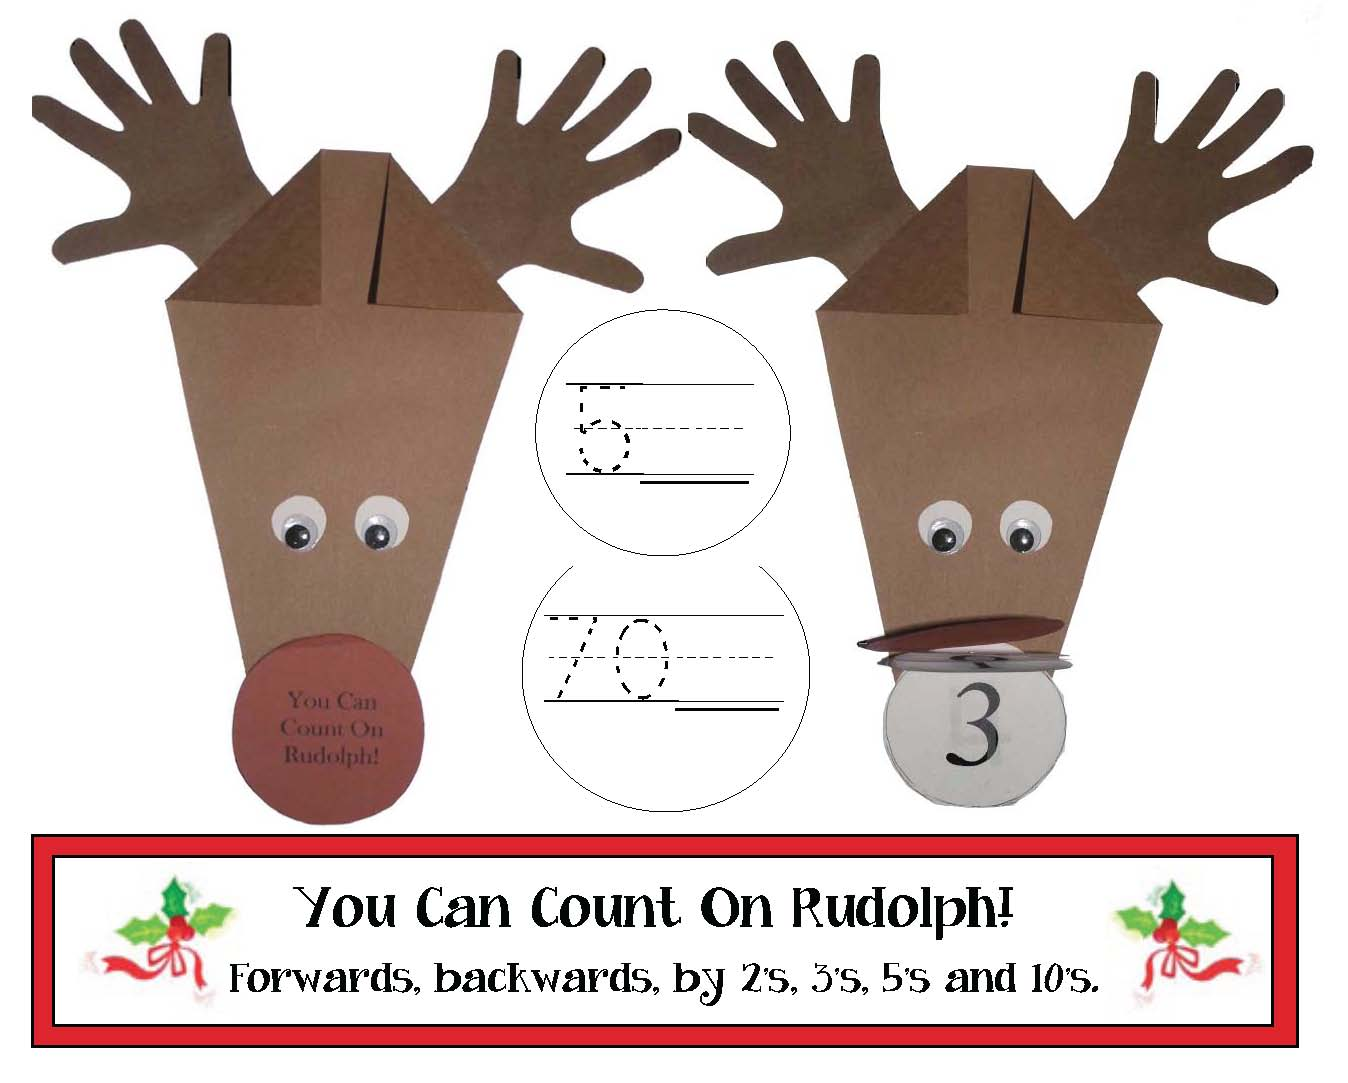 elf on a shelf activities, elf help, 2D shape activities, reindeer crafts, reindeer activities, 2D shape games, alphabet games, alphabet assessments, alphabet activities, behavior modification activities, classroom management ideas, alphabet activities, elf-abet cards, elf on a shelf games, elf on a shelf crafts